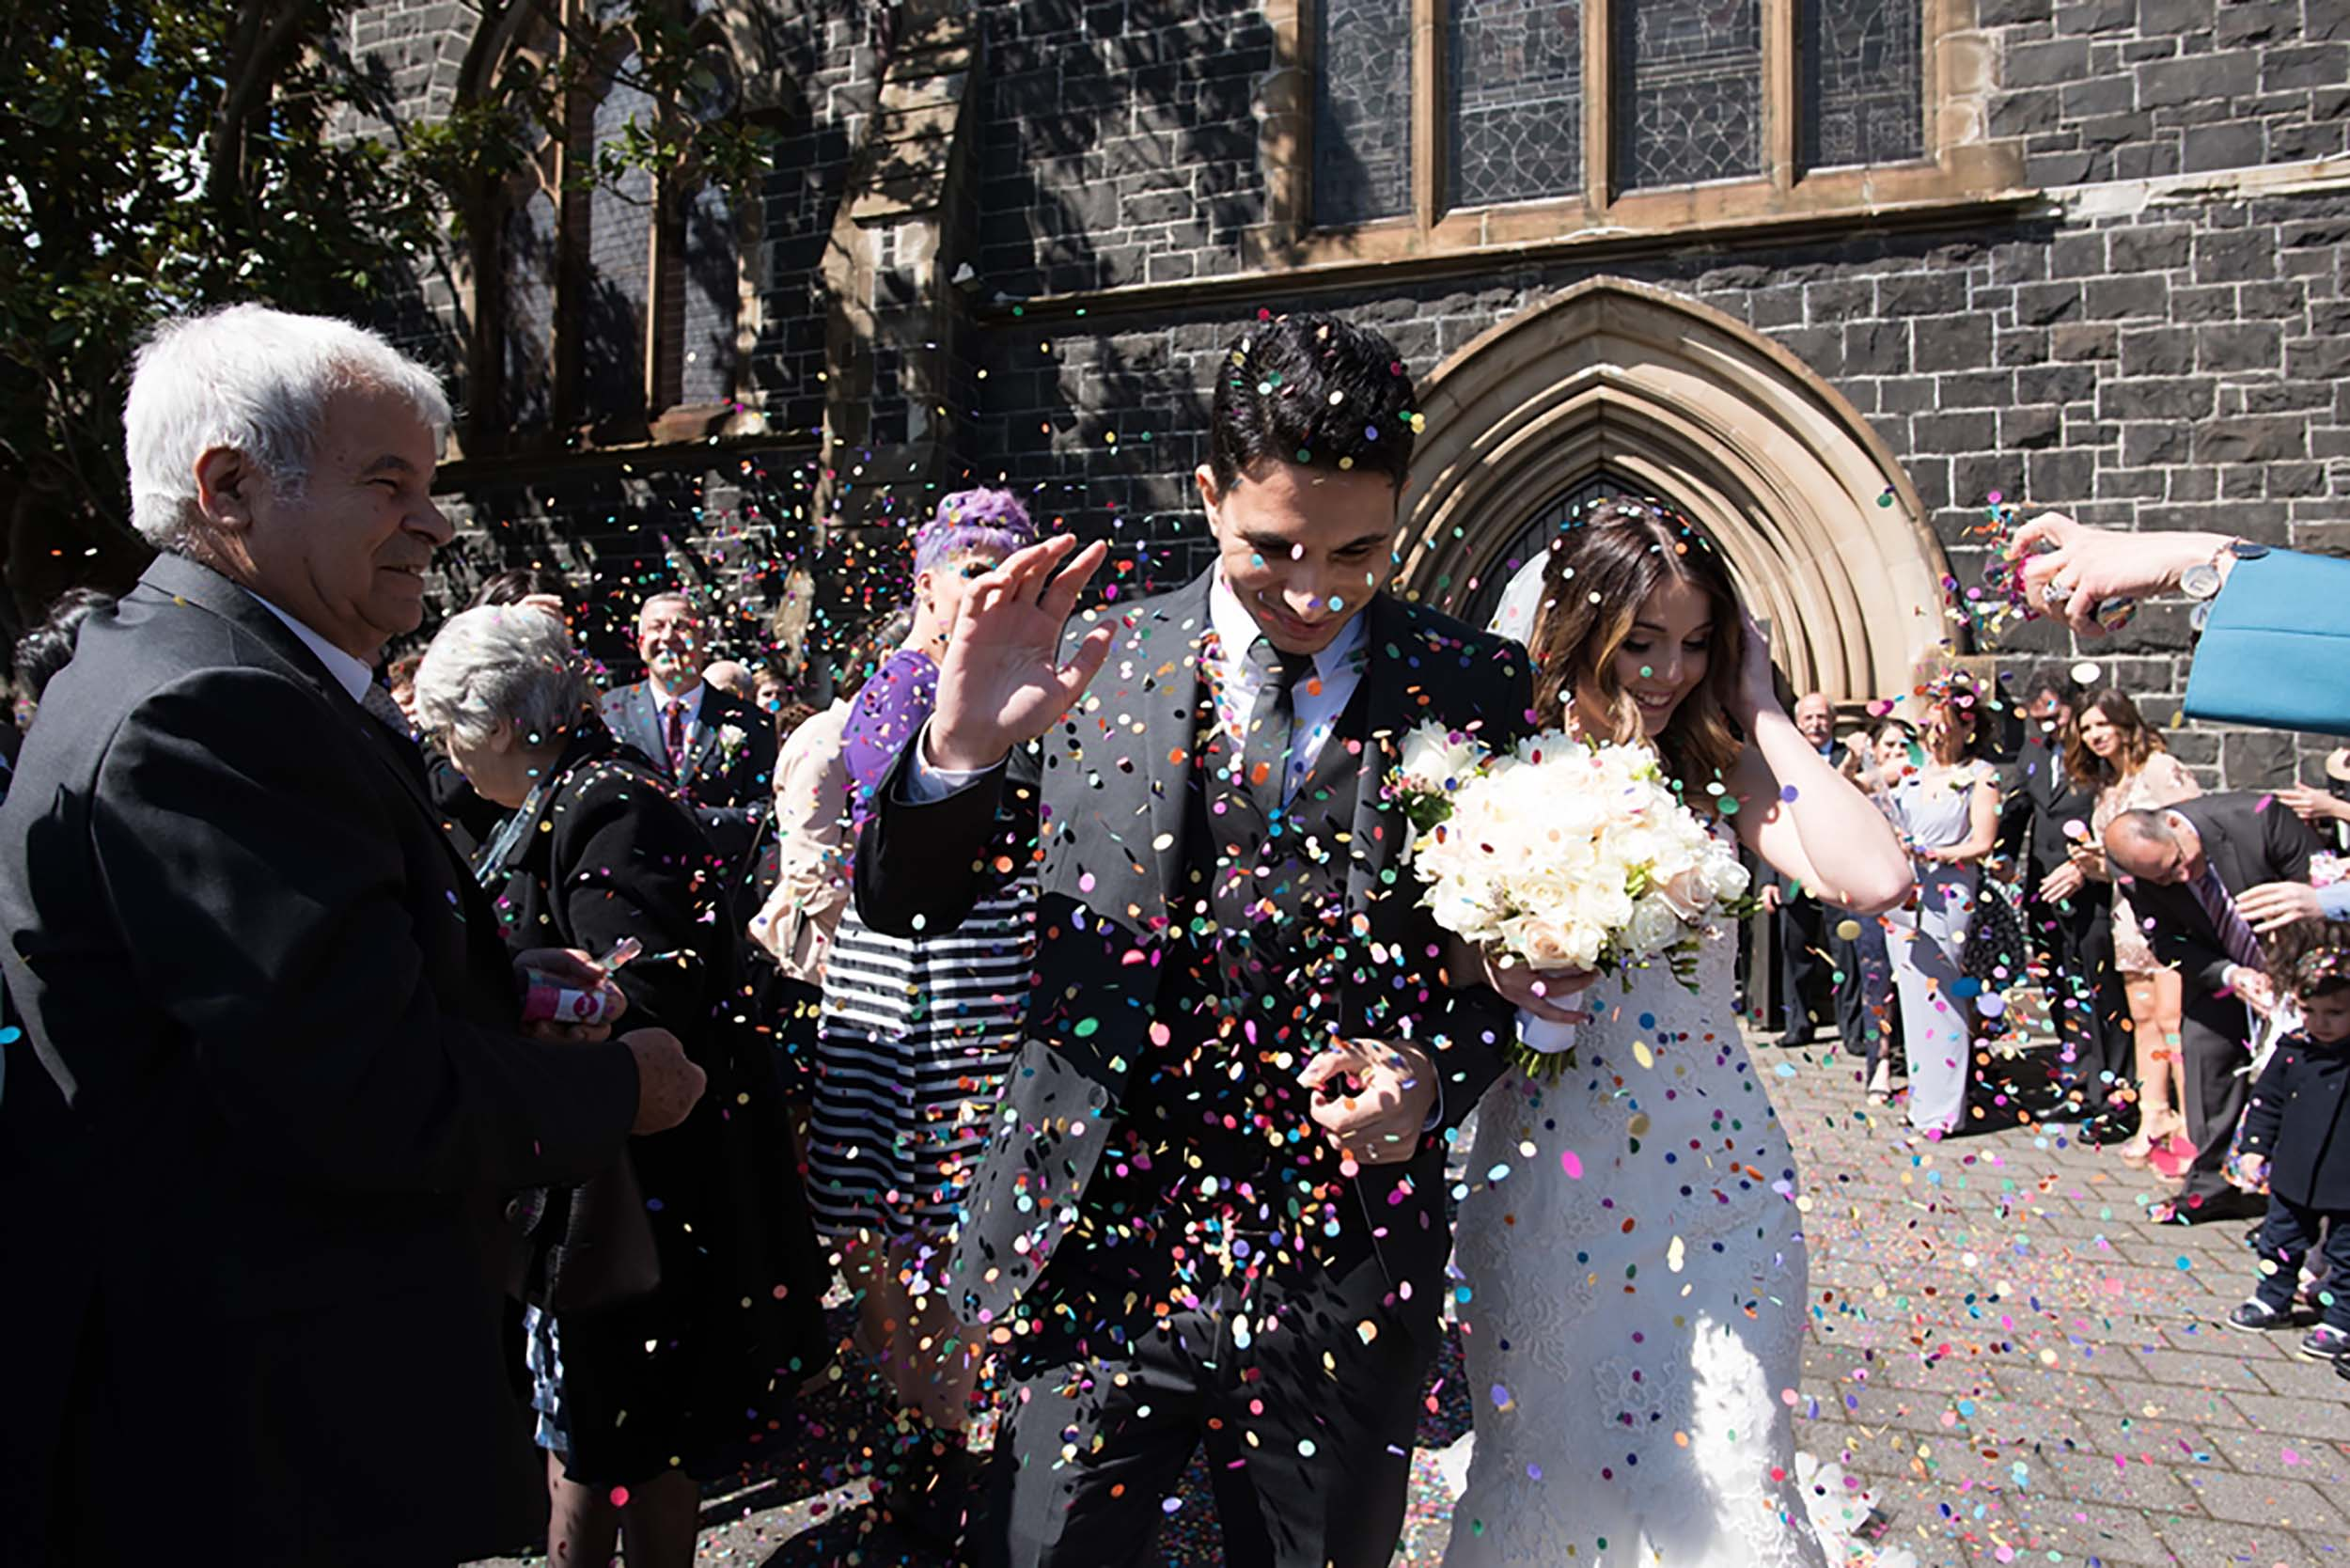 Confetti Thrown at Couple